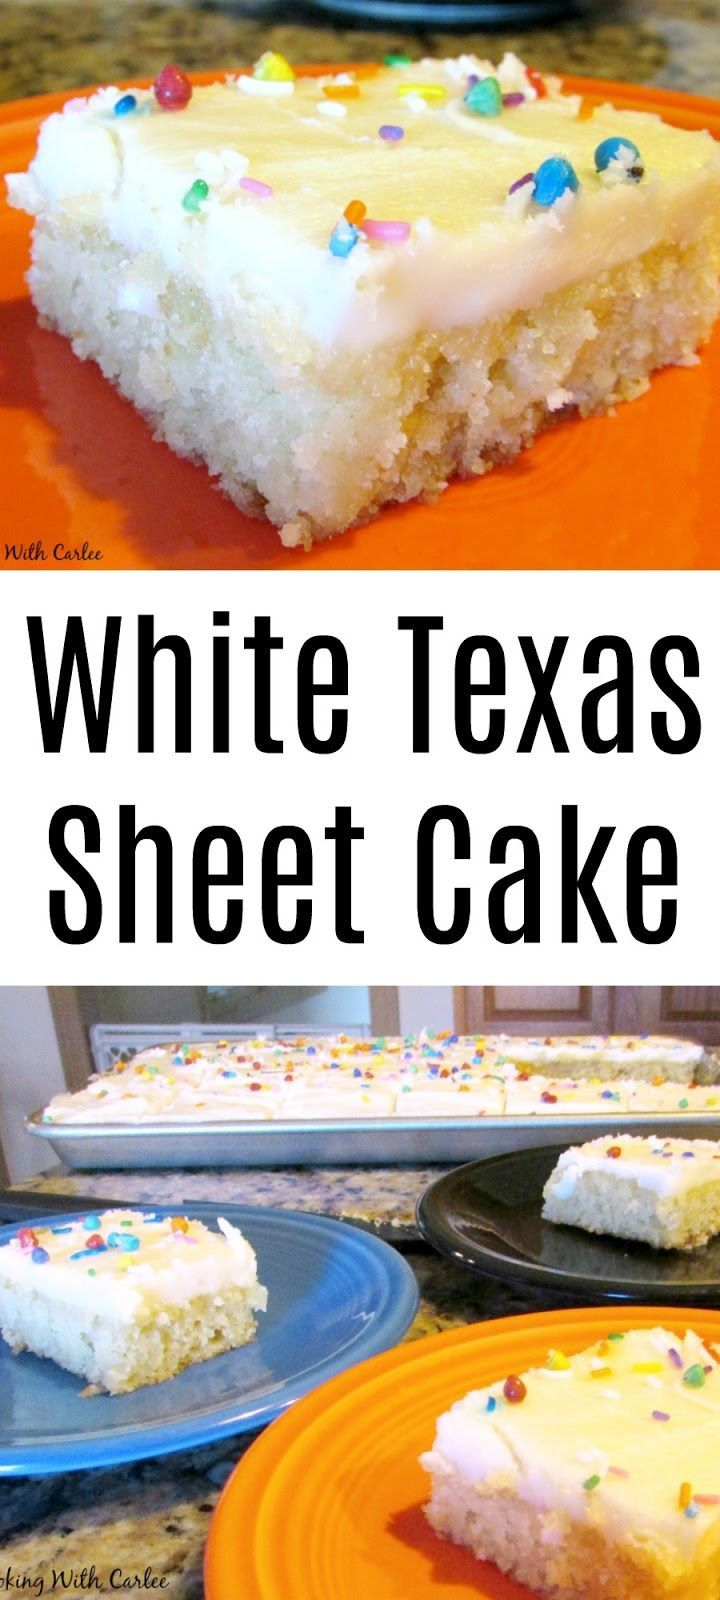 This sheet cake is perfect for feeding a crowd. White cake and white frosting is my dad's favorite combination. It is a quick and easy cake that will be popular at your next BBQ or potluck!